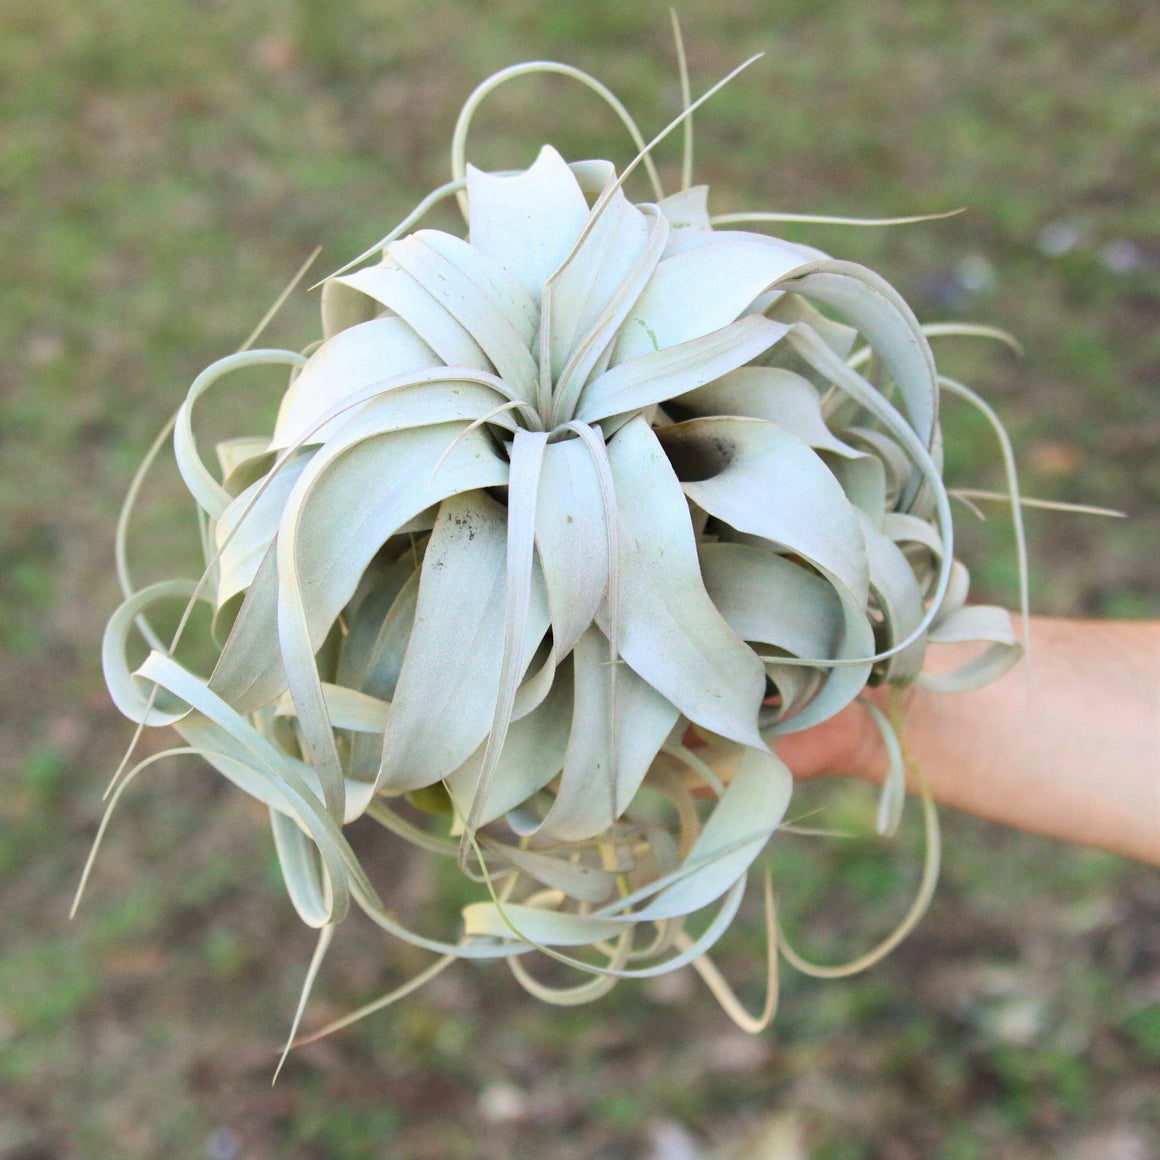 SALE - Large Xerographica - 6 to 8 Inches Wide - Set of 3 or 6 Specialty Air Plants - 40% Off